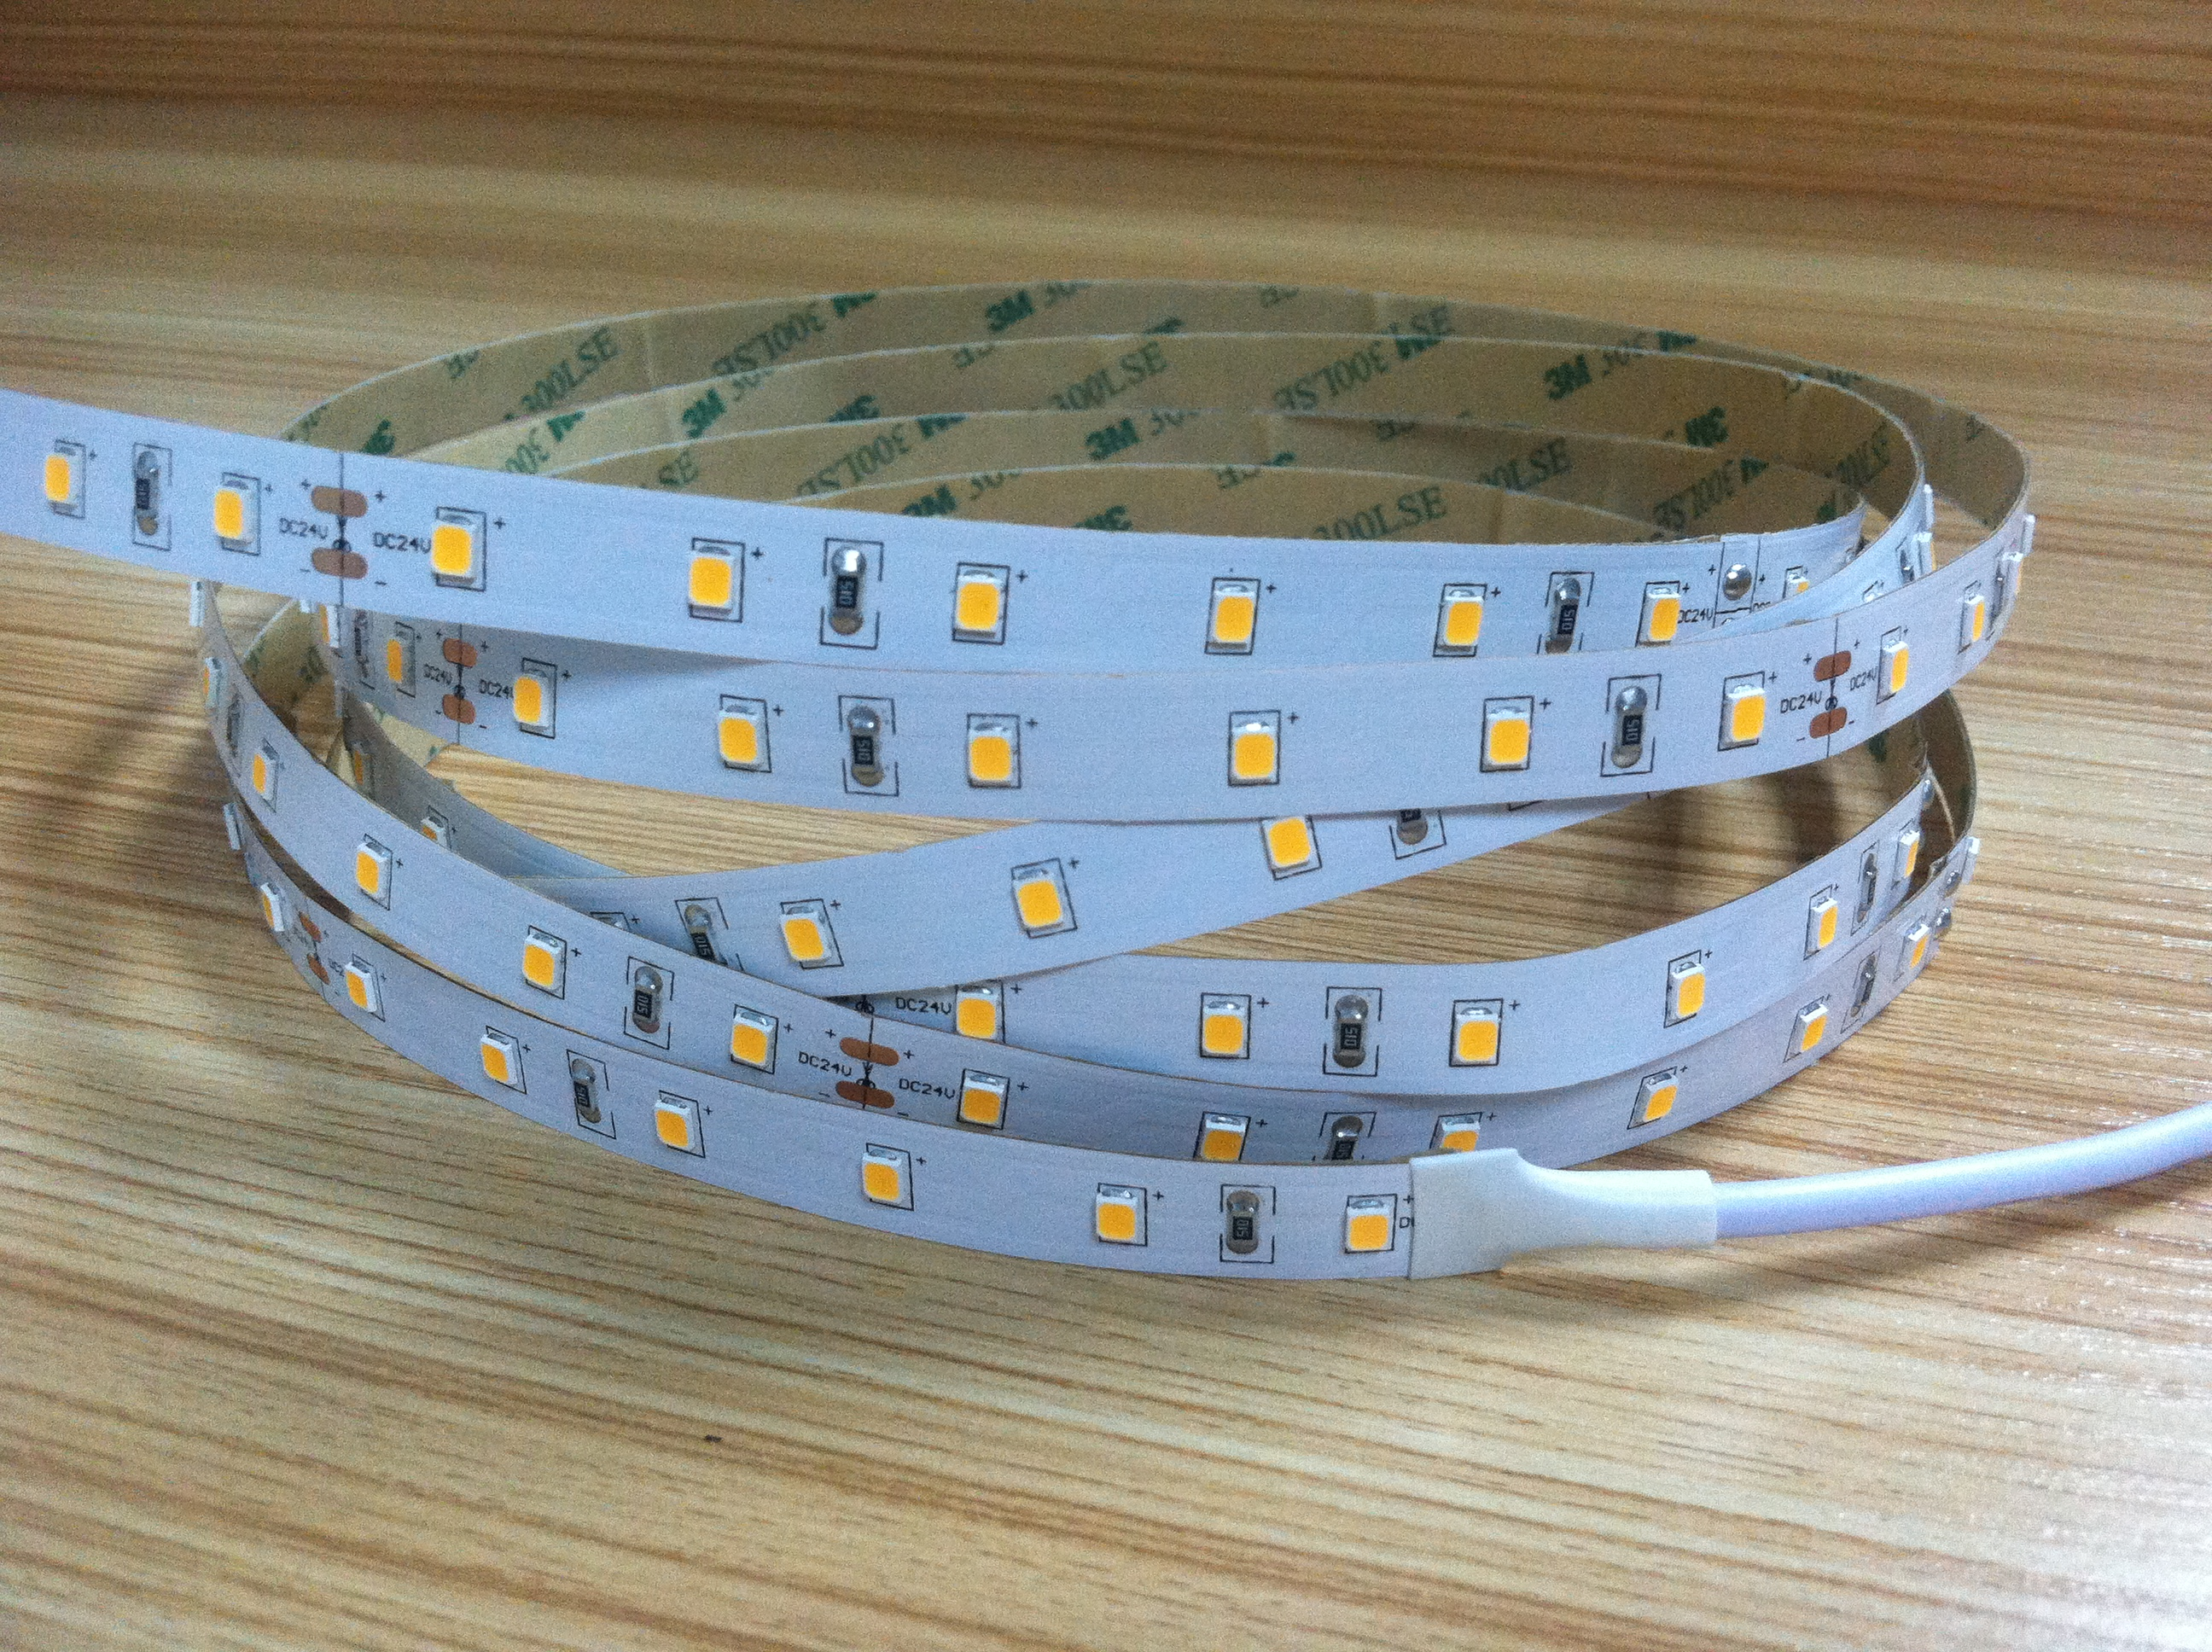 |high qulaity led strip lights|Ultra bright led strip light|brightest led strip lights|_1